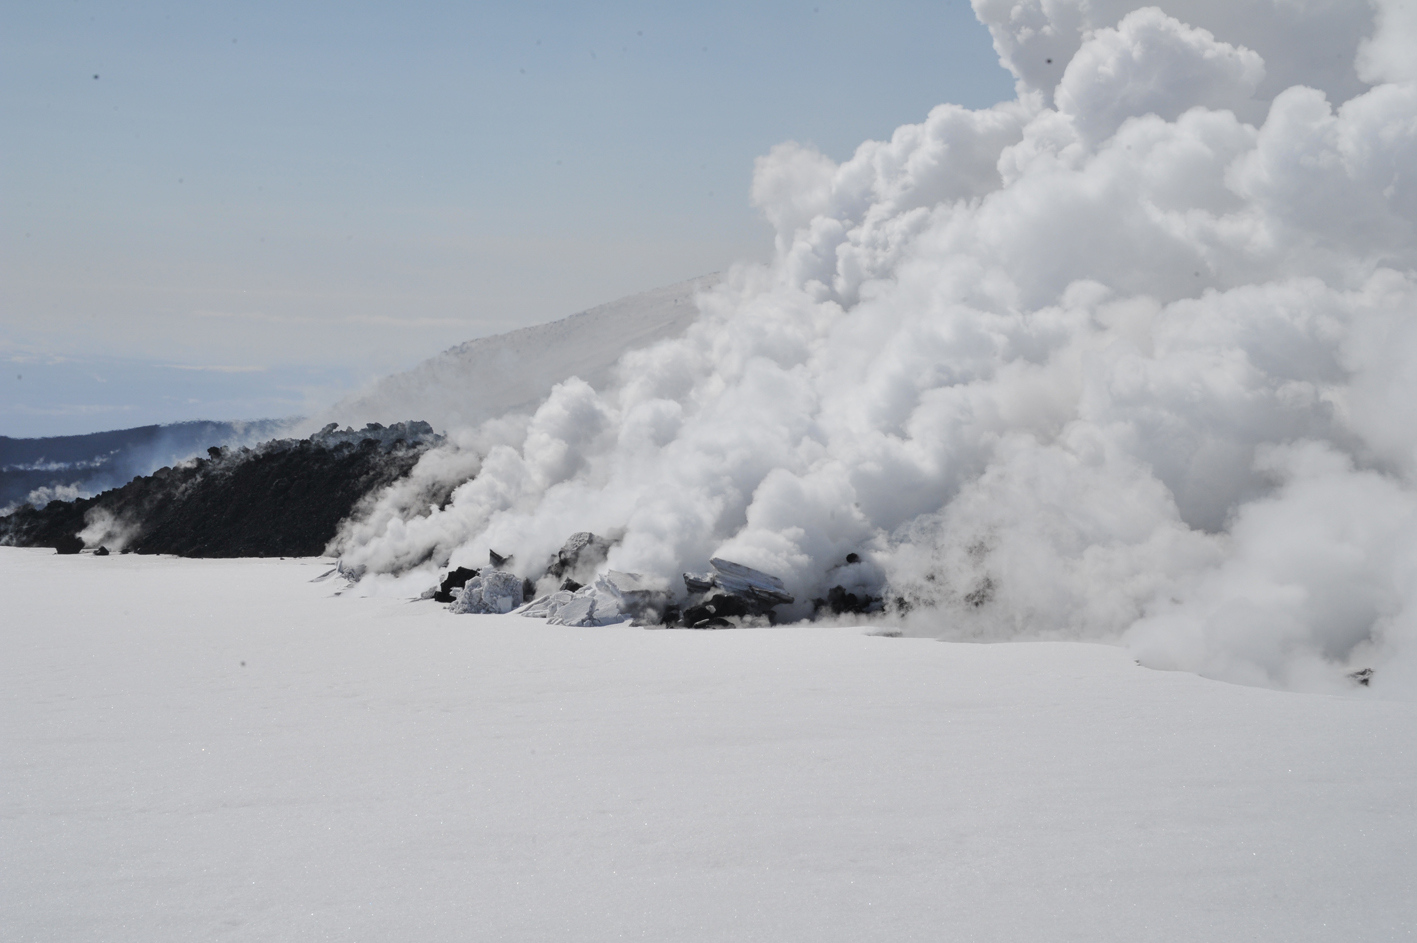 Steaming from 'snow dome', where lava is pushing up blocks of snow.